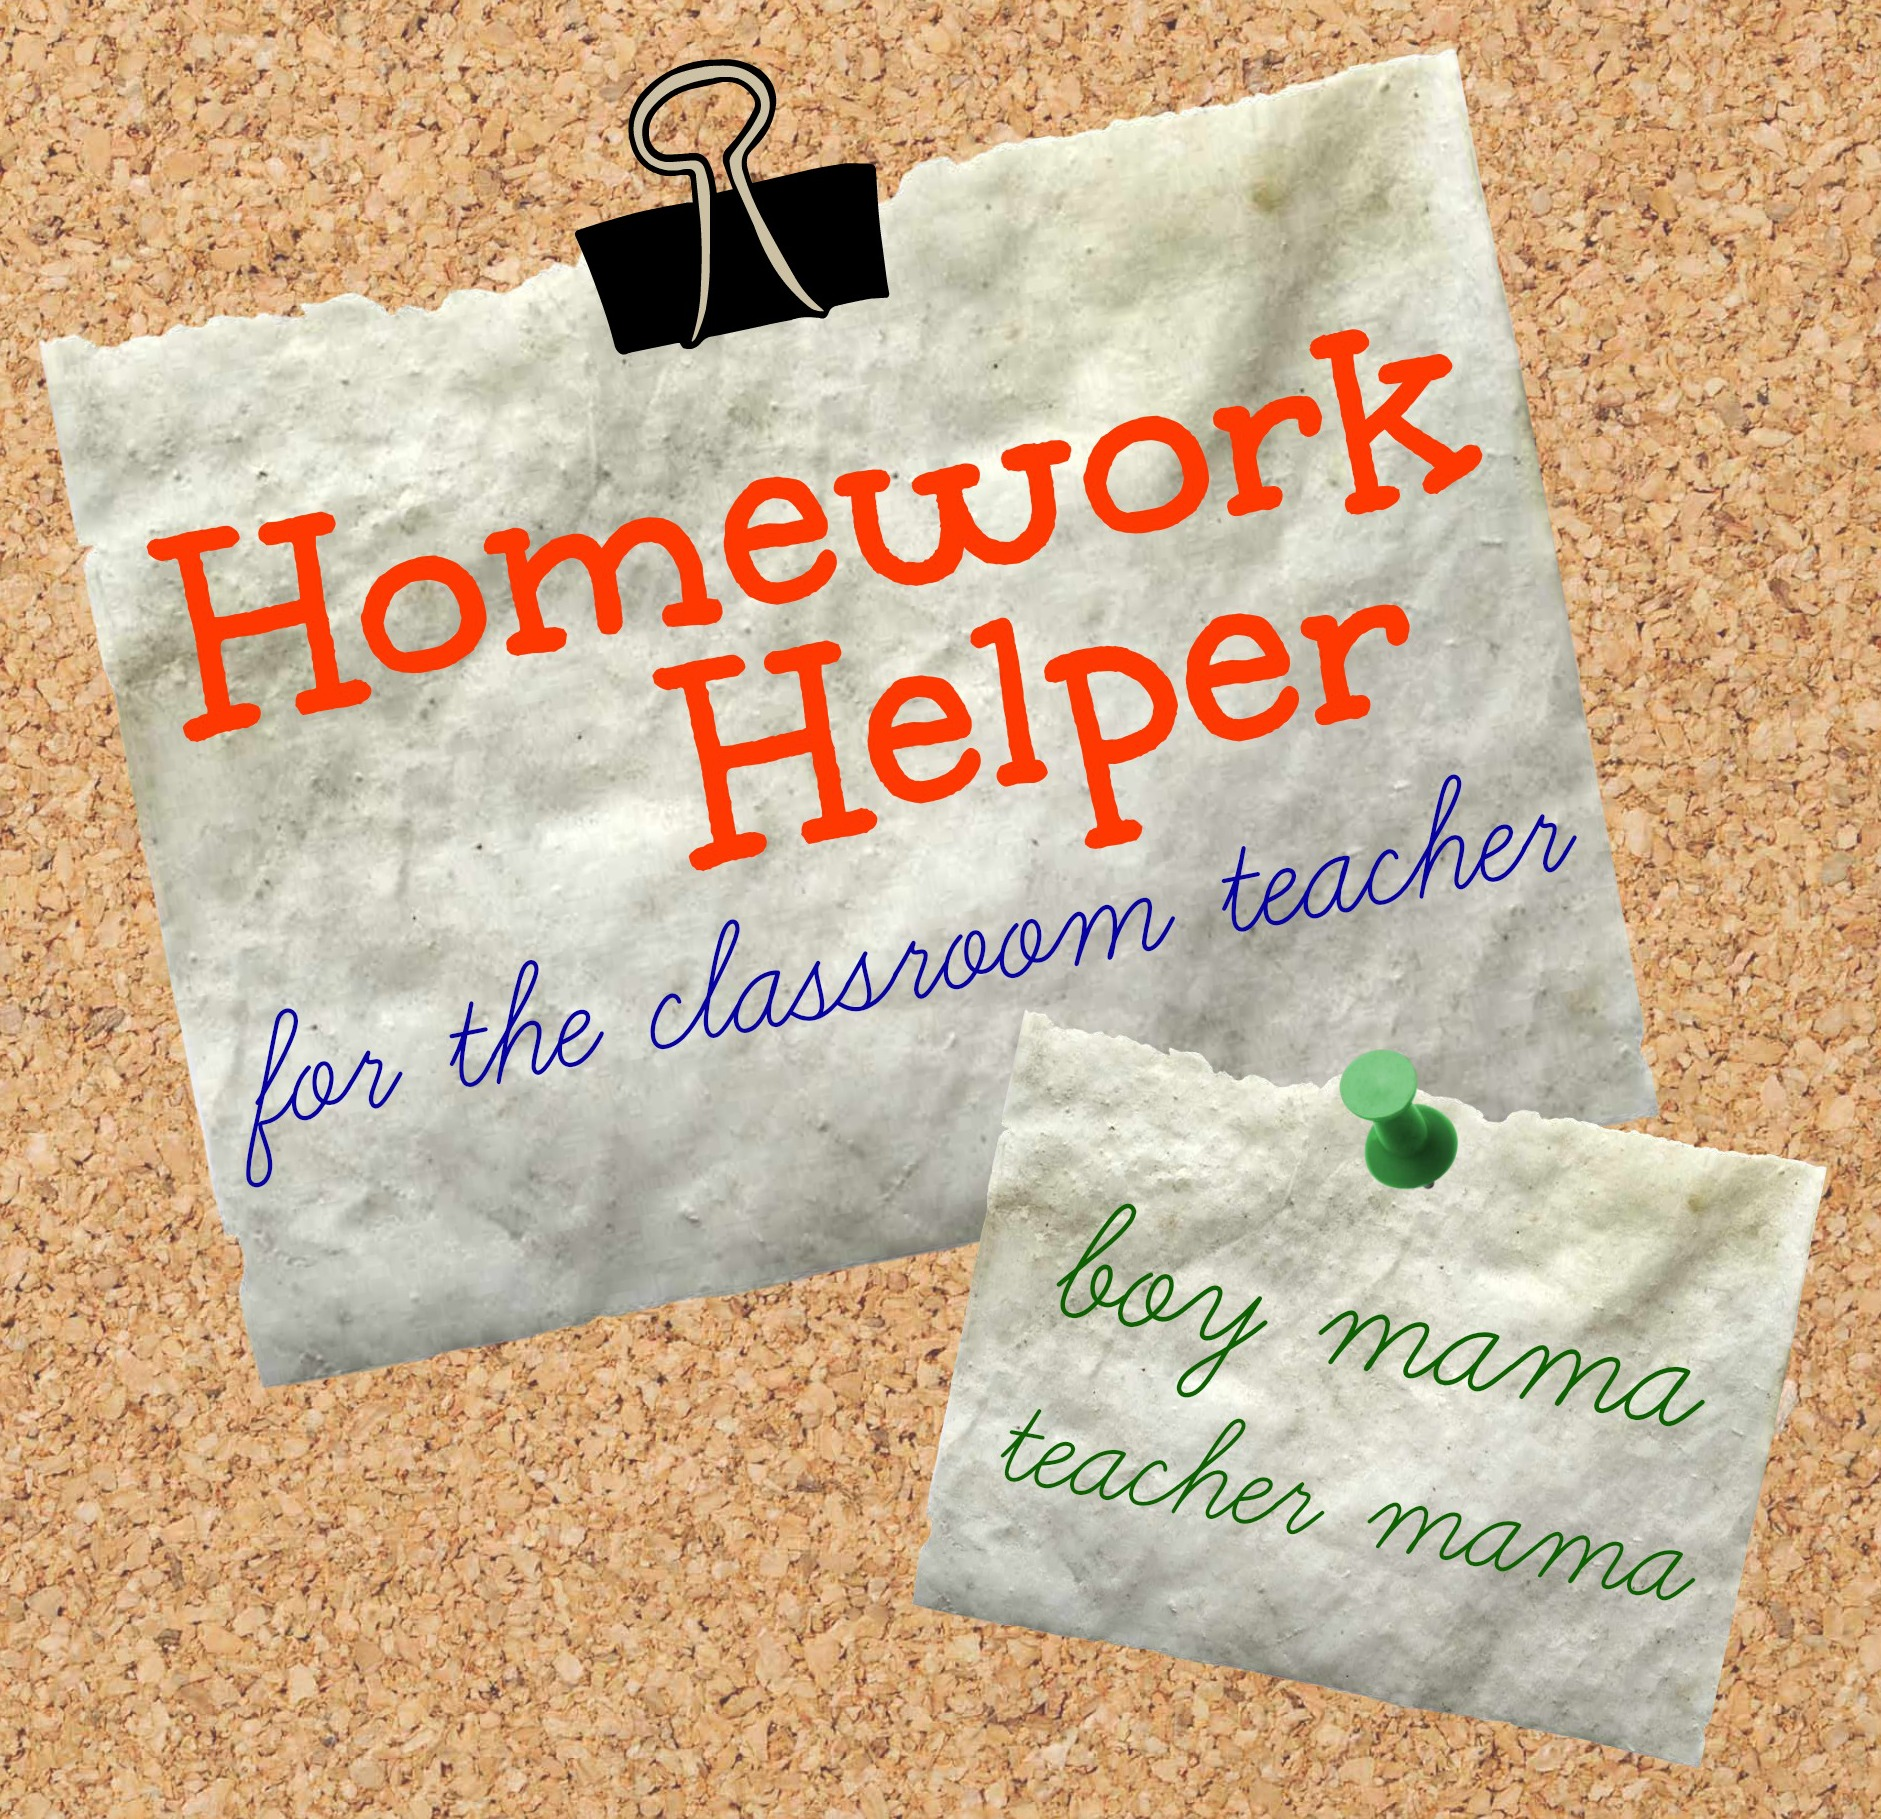 homeworkhelper Algebra, math homework solvers, lessons and free tutors onlinepre-algebra, algebra i, algebra ii, geometry, physics created by our free tutors.